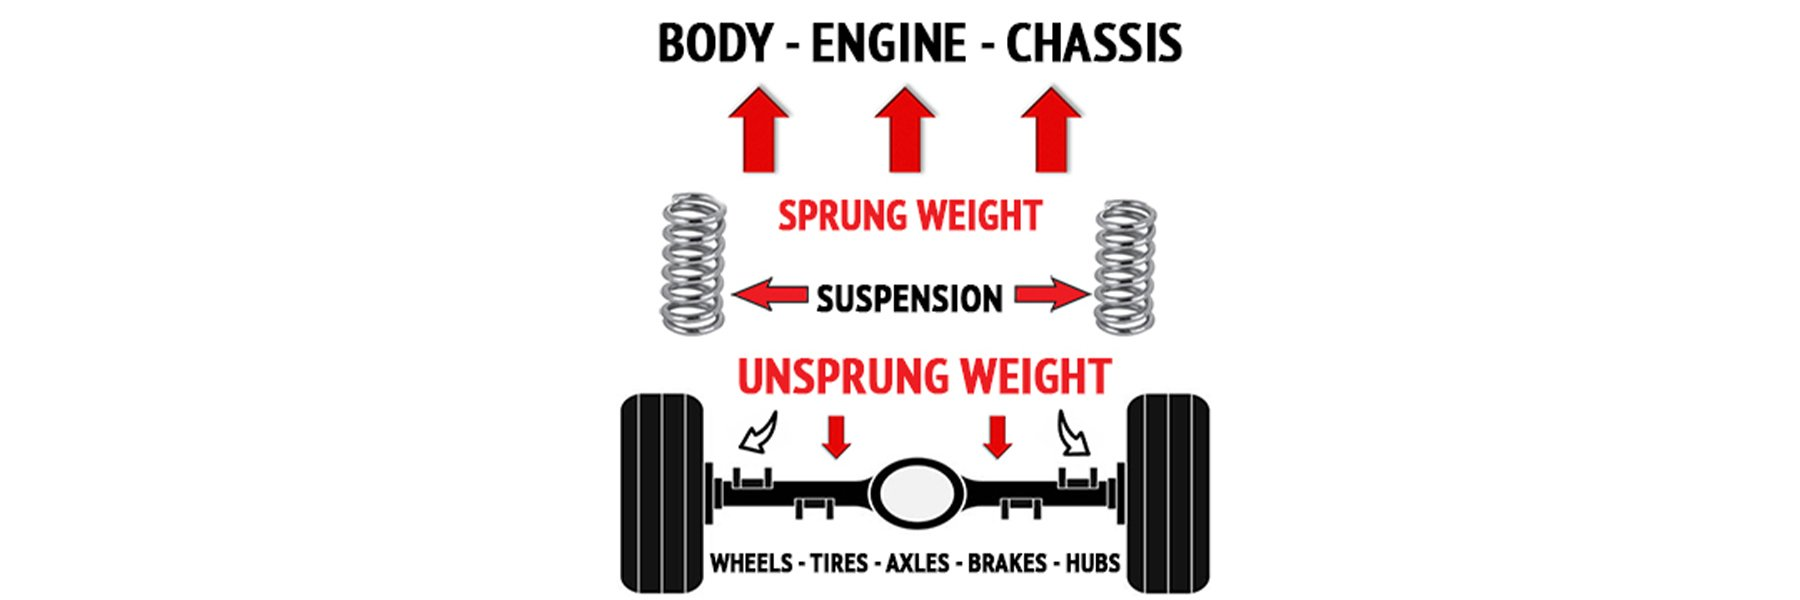 wheels, tires, axles, brakes, hubs, unsprung, weight, body, engine, chassis, suspension